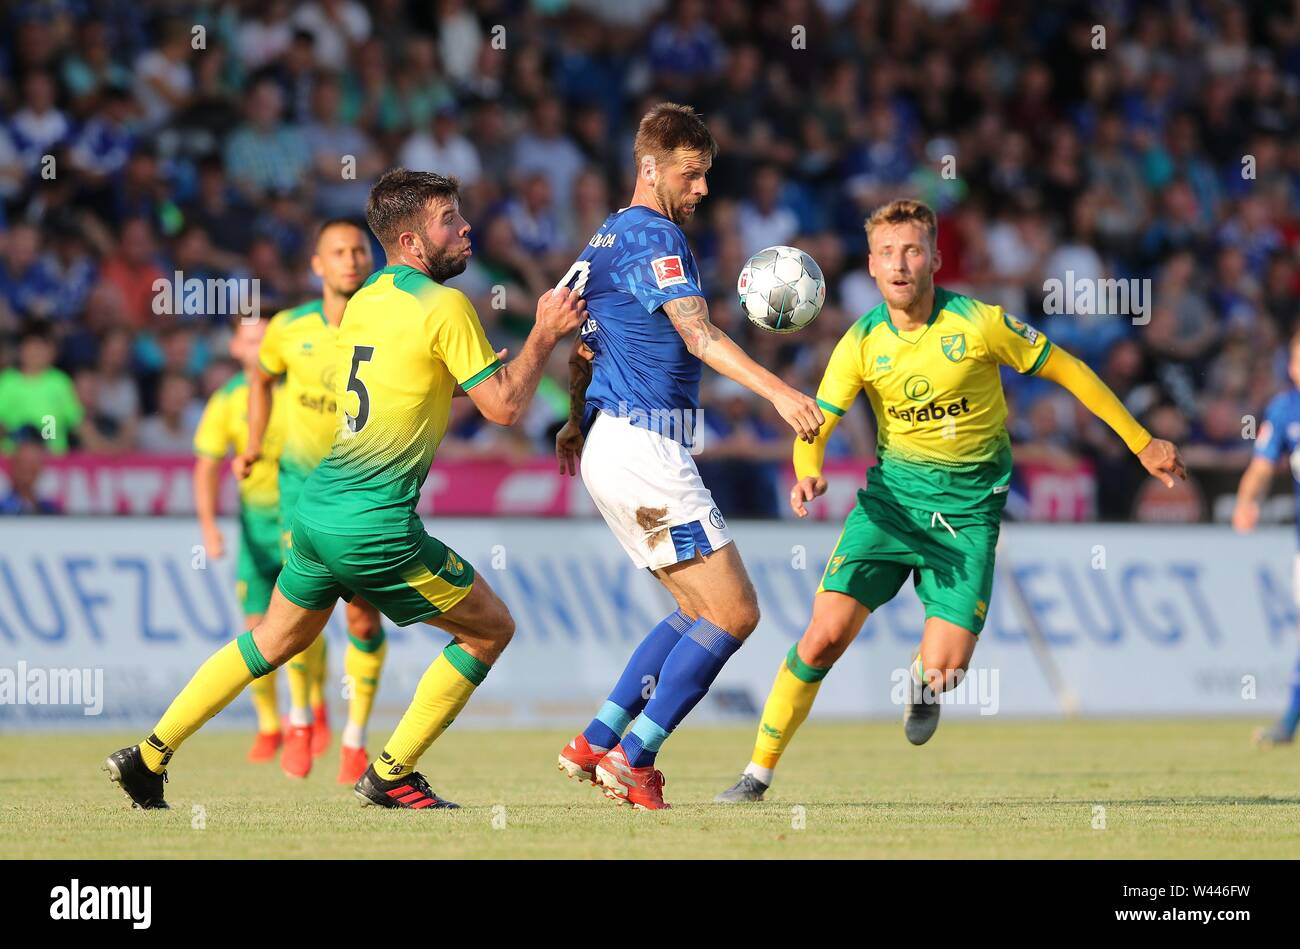 Lotte, Deutschland. 19th July, 2019. firo: 19.07.2019, football, 1.Bundesliga, season 2019/2020, friendly match, FC Schalke 04 - Norwich City Guido BURGSTALLER, Schalke, withte | usage worldwide Credit: dpa/Alamy Live News - Stock Image